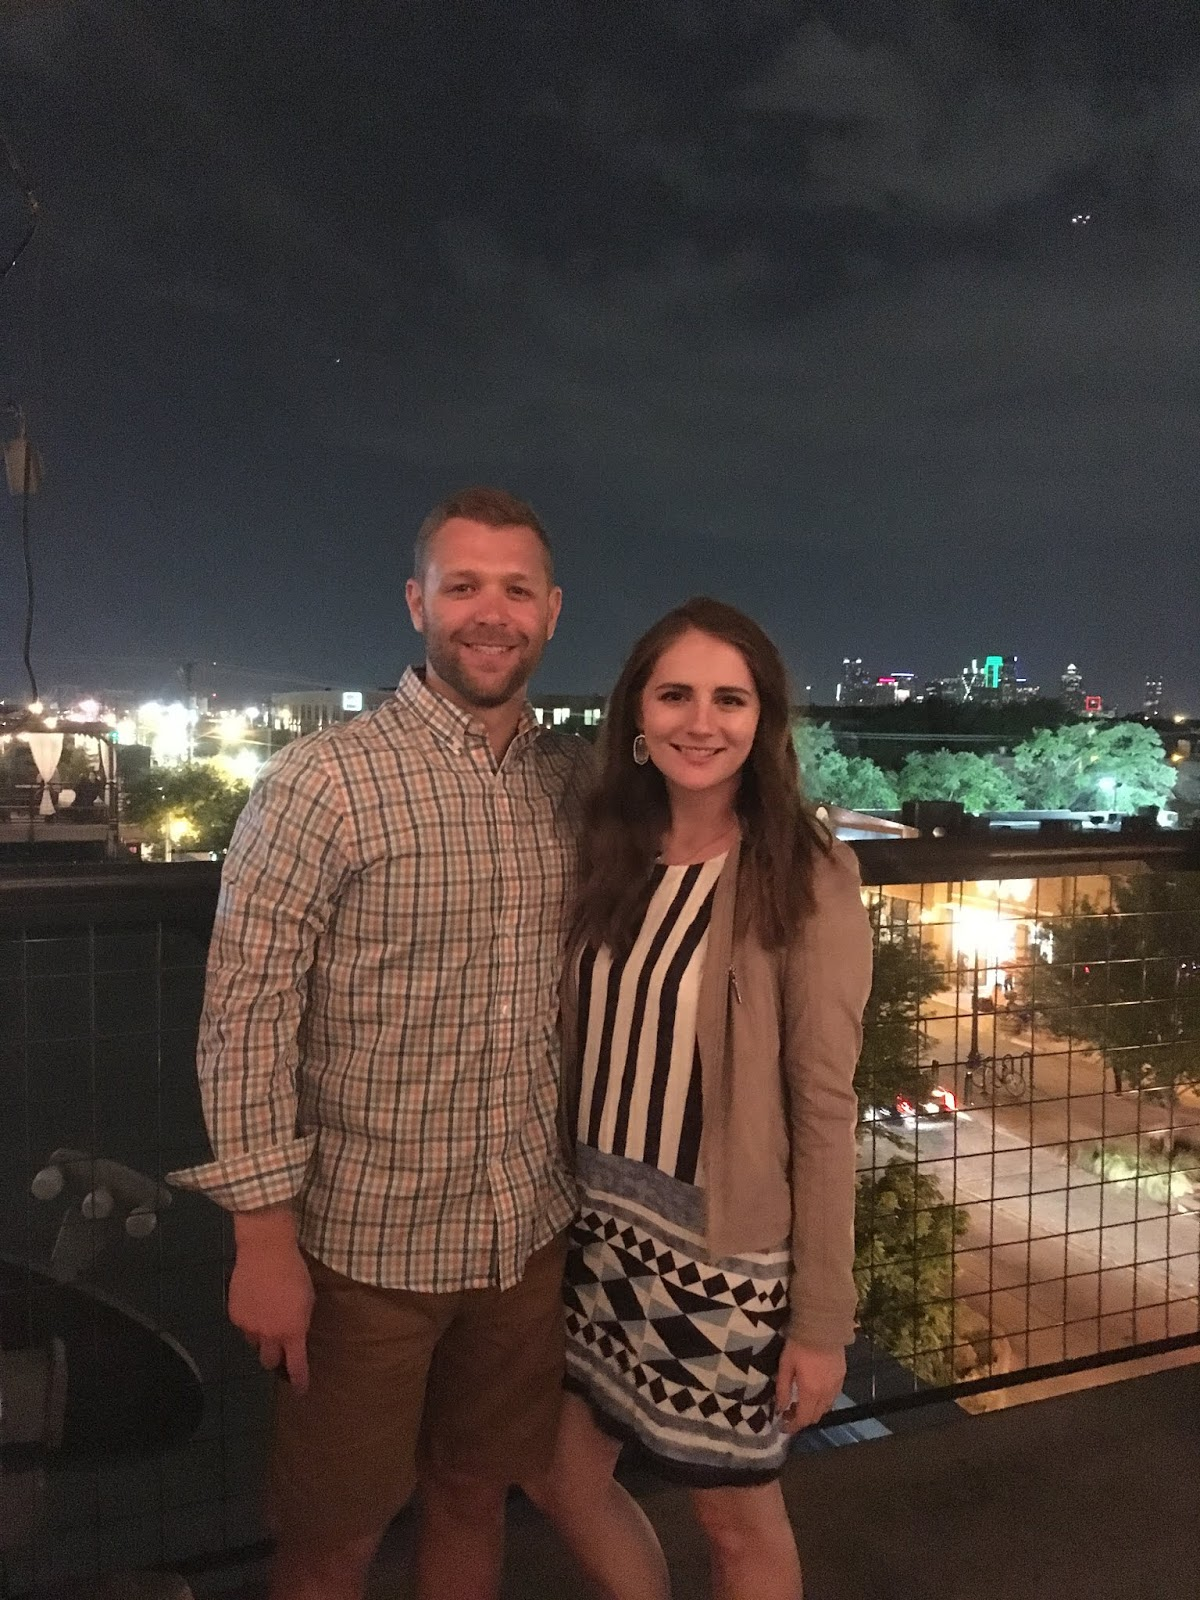 Rooftop Bar in Dallas Texas | What to do in Dallas | HG Sply Co | Dallas Rootop | Texas Road Trip Ideas | A memory of Us|